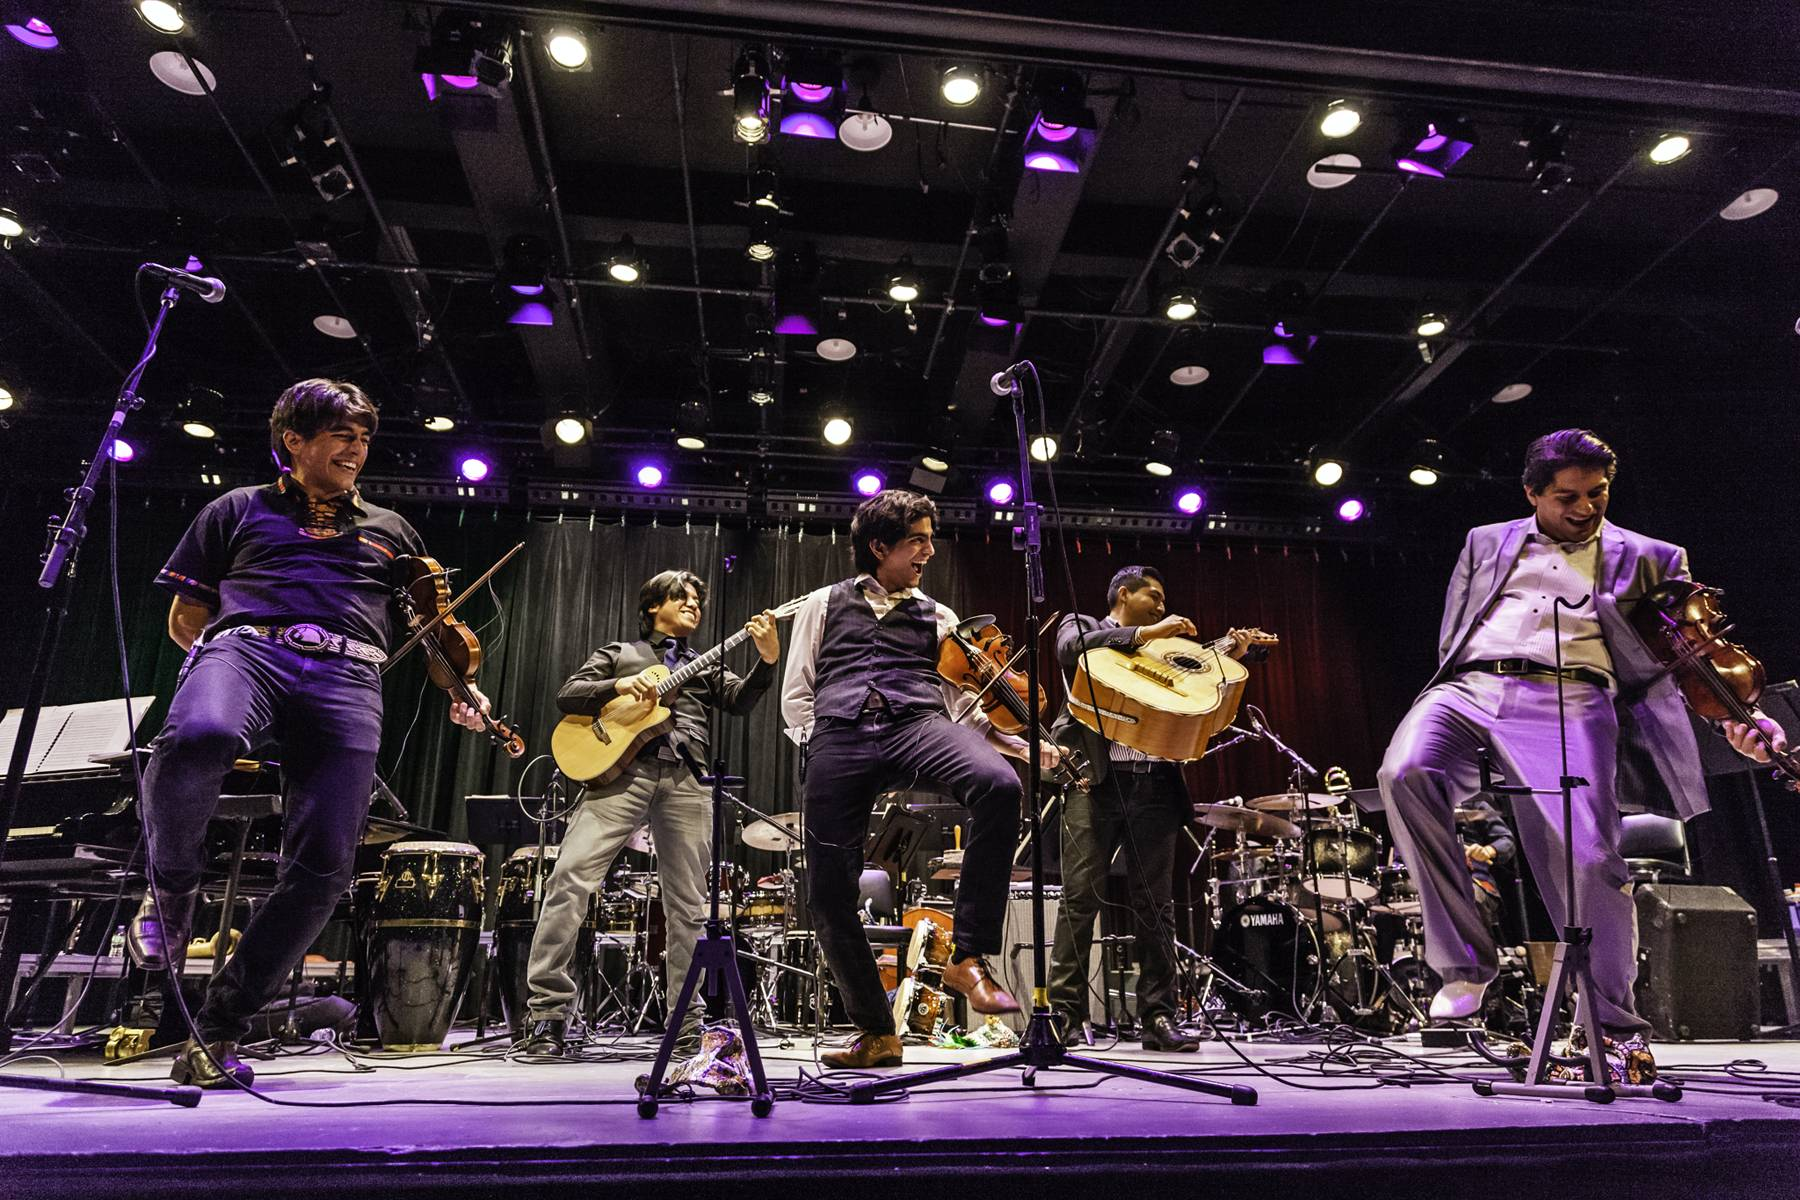 Leading contemporary Mexican music ensemble Villalobos Brothers will perform at the ECC Arts Center on Saturday, Oct. 7.